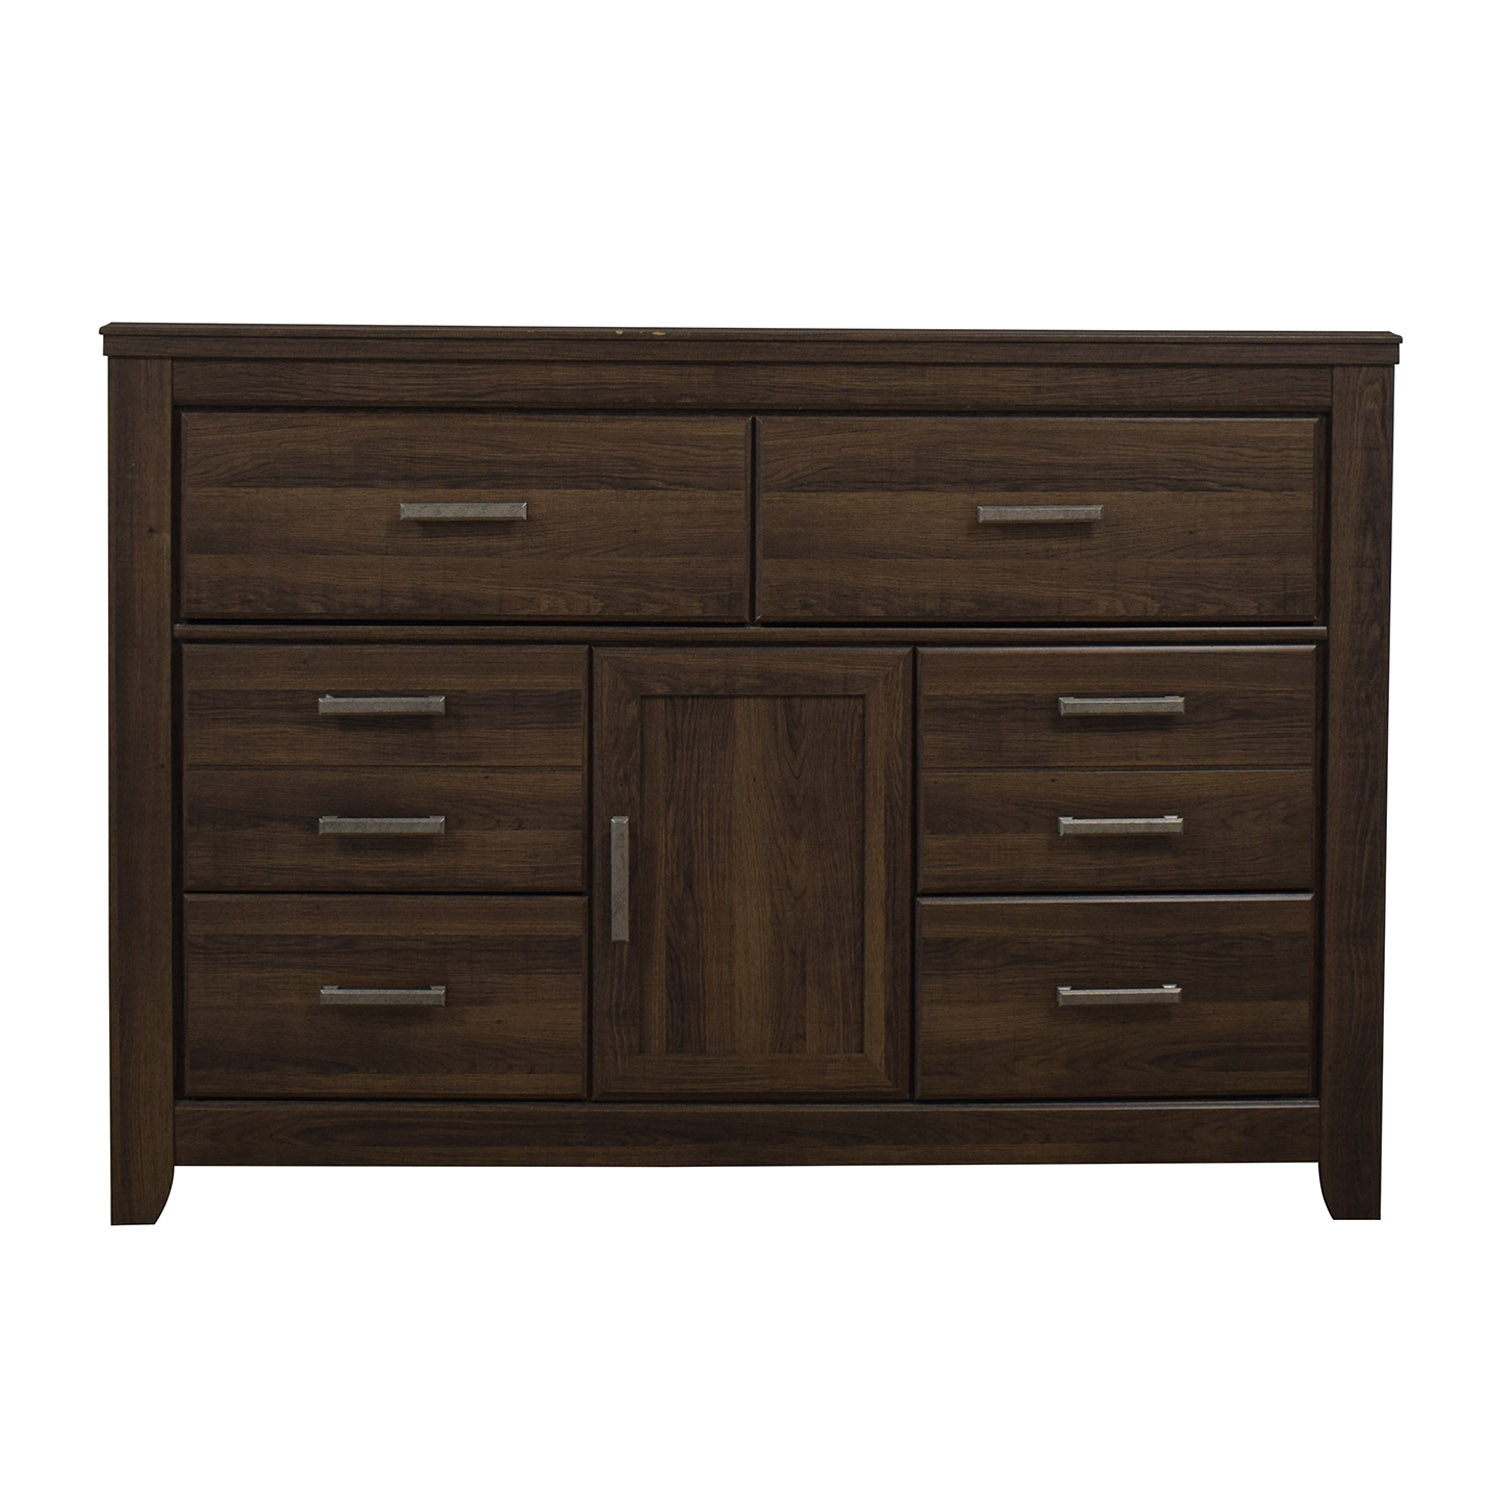 Ashley Furniture Ashley Furniture Juararo Dresser dimensions